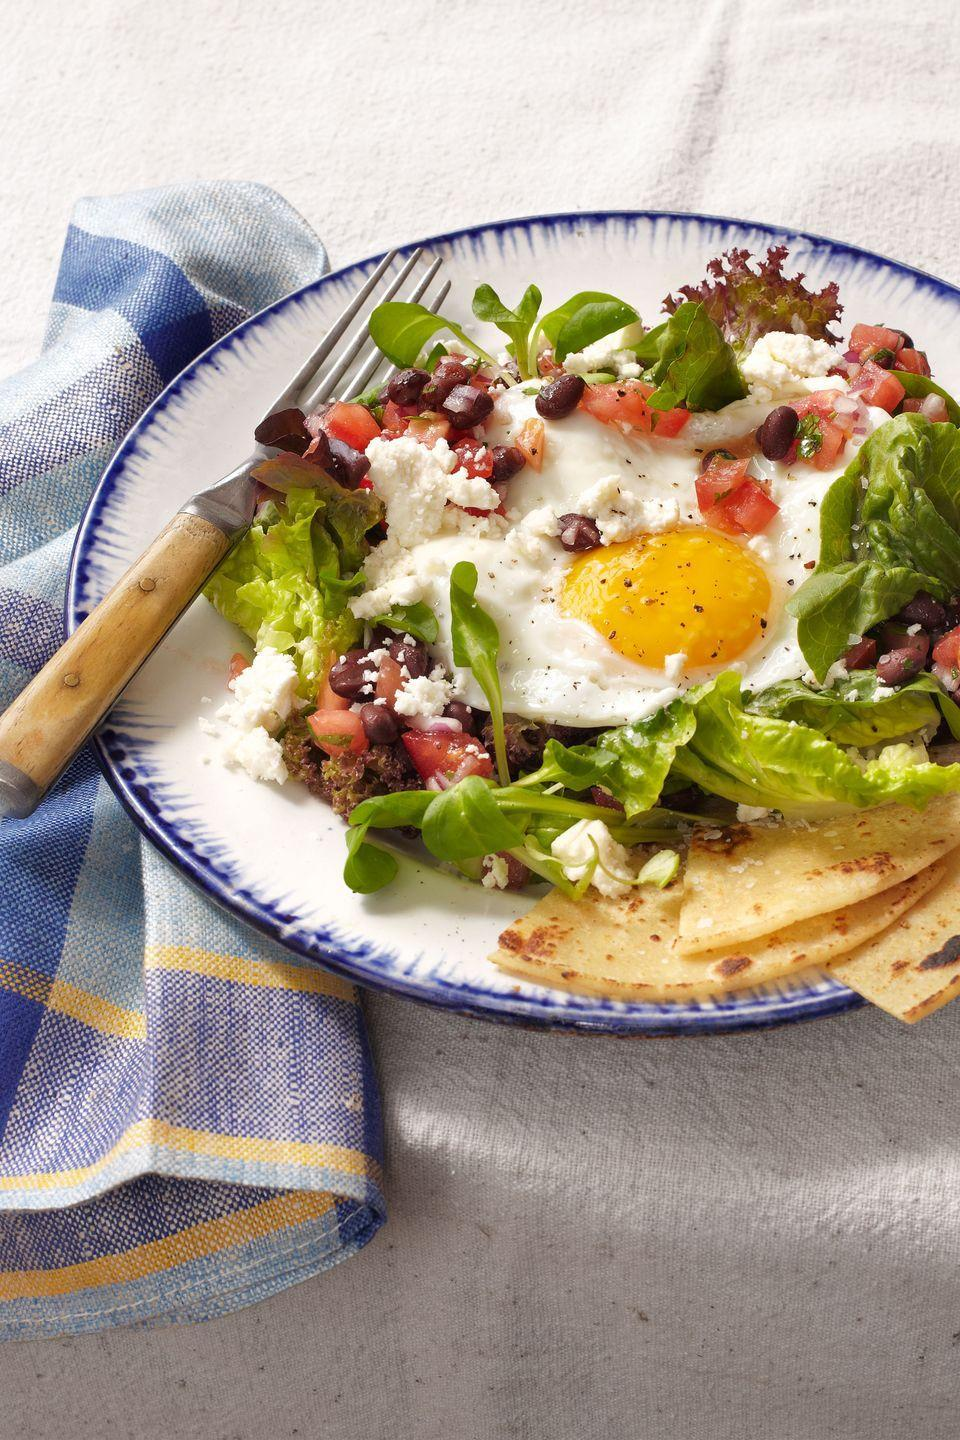 "<p>A bright, sunny-side-up fried egg steals the show on this Southwestern salad topped with queso fresco, cilantro, and a citrusy black-bean-and-tomato salsa.</p><p><a href=""https://www.countryliving.com/food-drinks/recipes/a6175/huevos-rancheros-salad-recipe-clv0214/"" rel=""nofollow noopener"" target=""_blank"" data-ylk=""slk:Get the recipe."" class=""link rapid-noclick-resp""><strong>Get the recipe.</strong></a></p>"